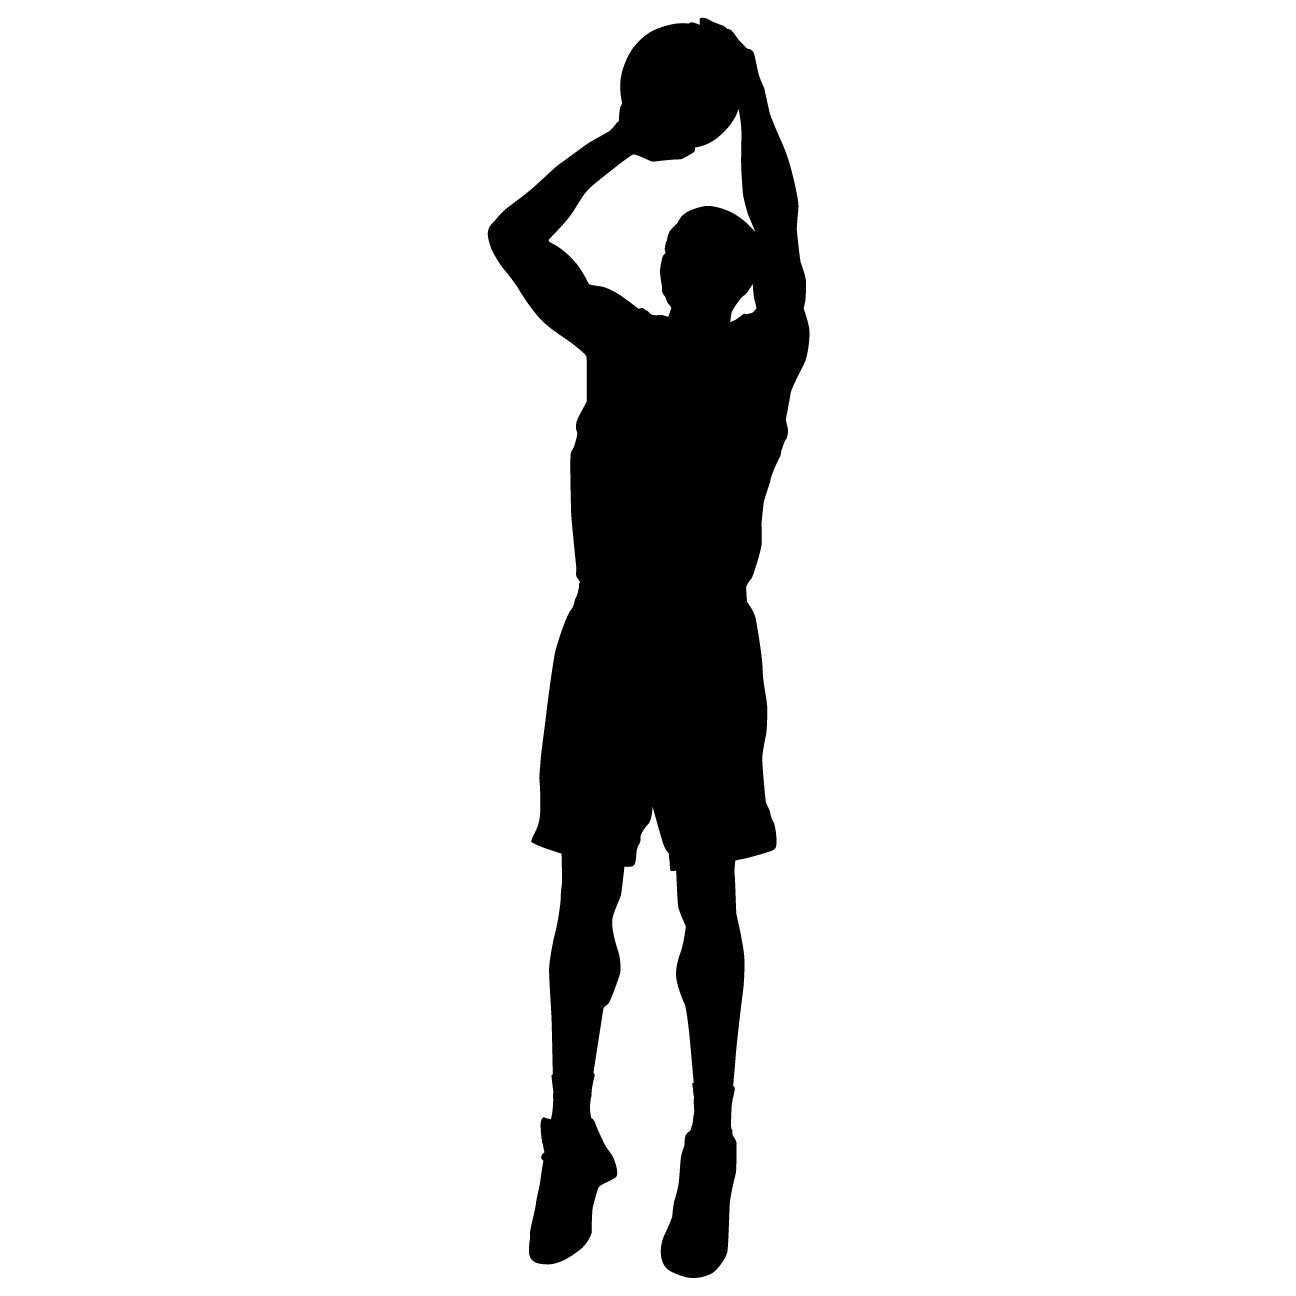 Buy Basketball Wall Decal Sticker 9 Decal Stickers And Mural For Kids Boys Girls Room And Bedroom Sport Vinyl Decor Wall Art For Home Decor And Decoration Basketball Player Silhouette